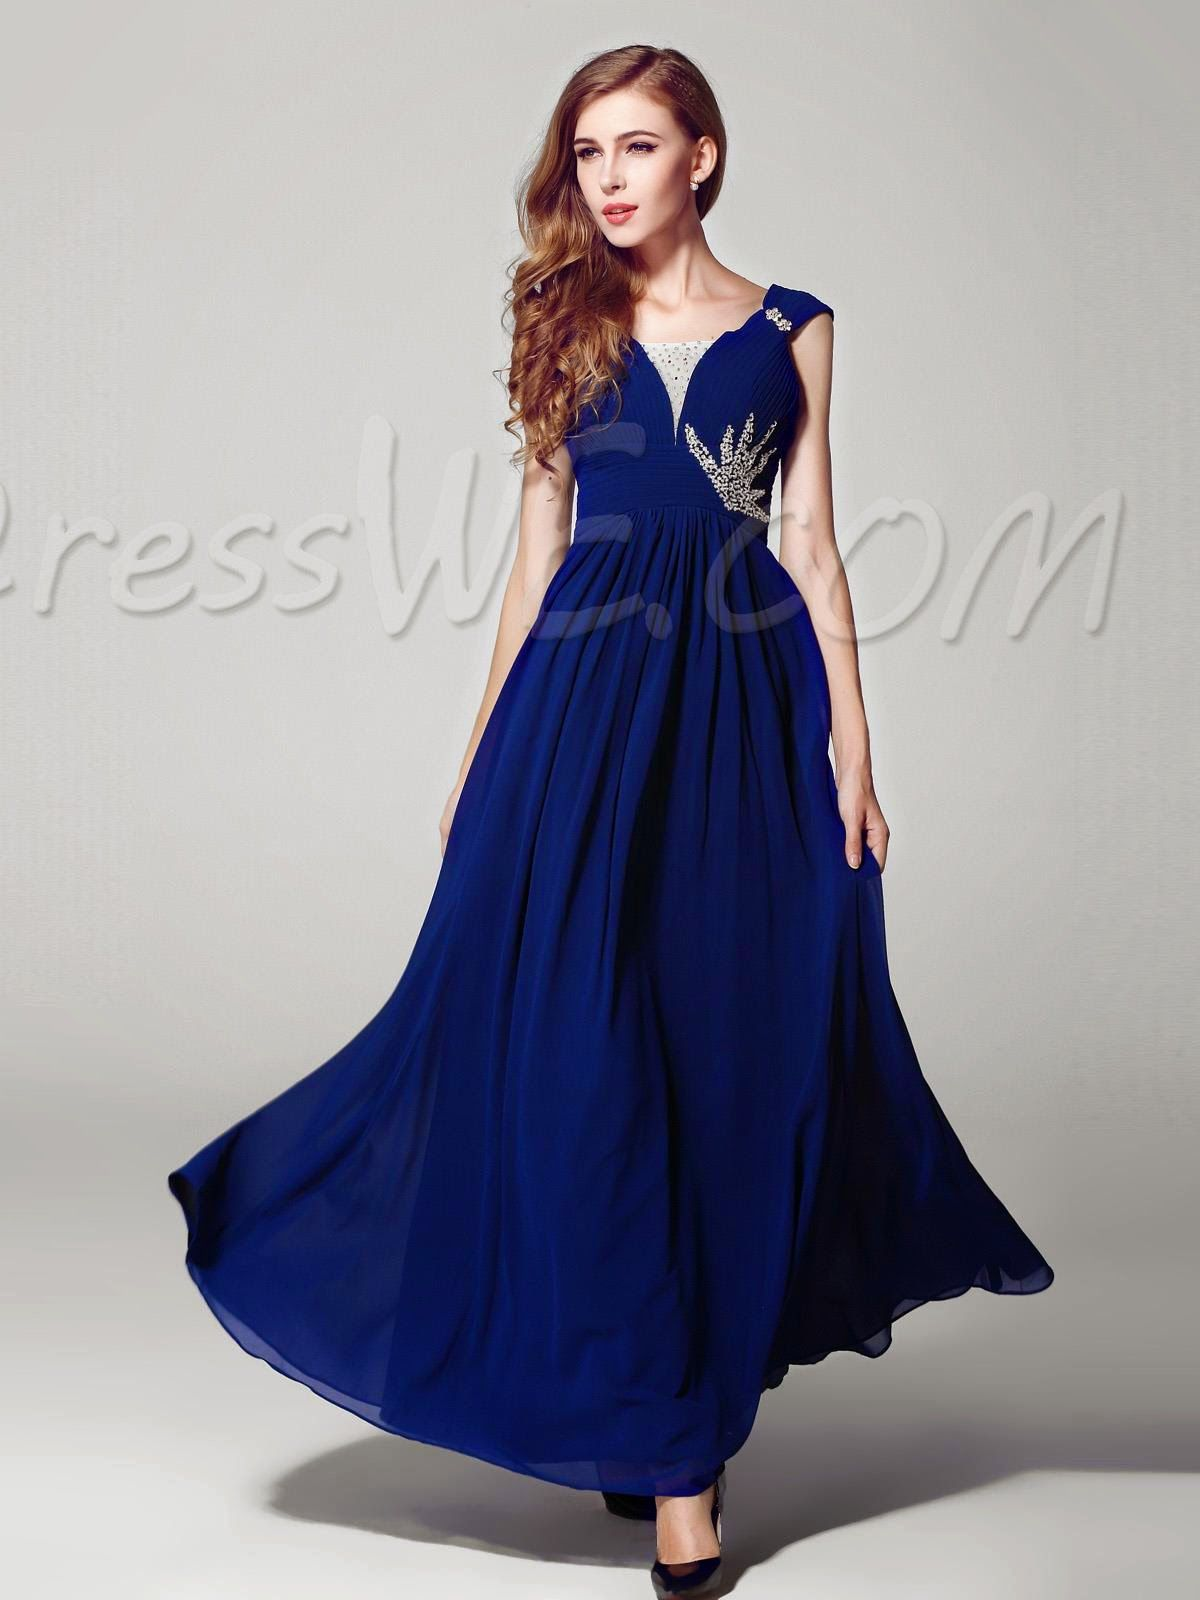 Plus Size Prom Dress Stores Near Me Holiday Dresses (с